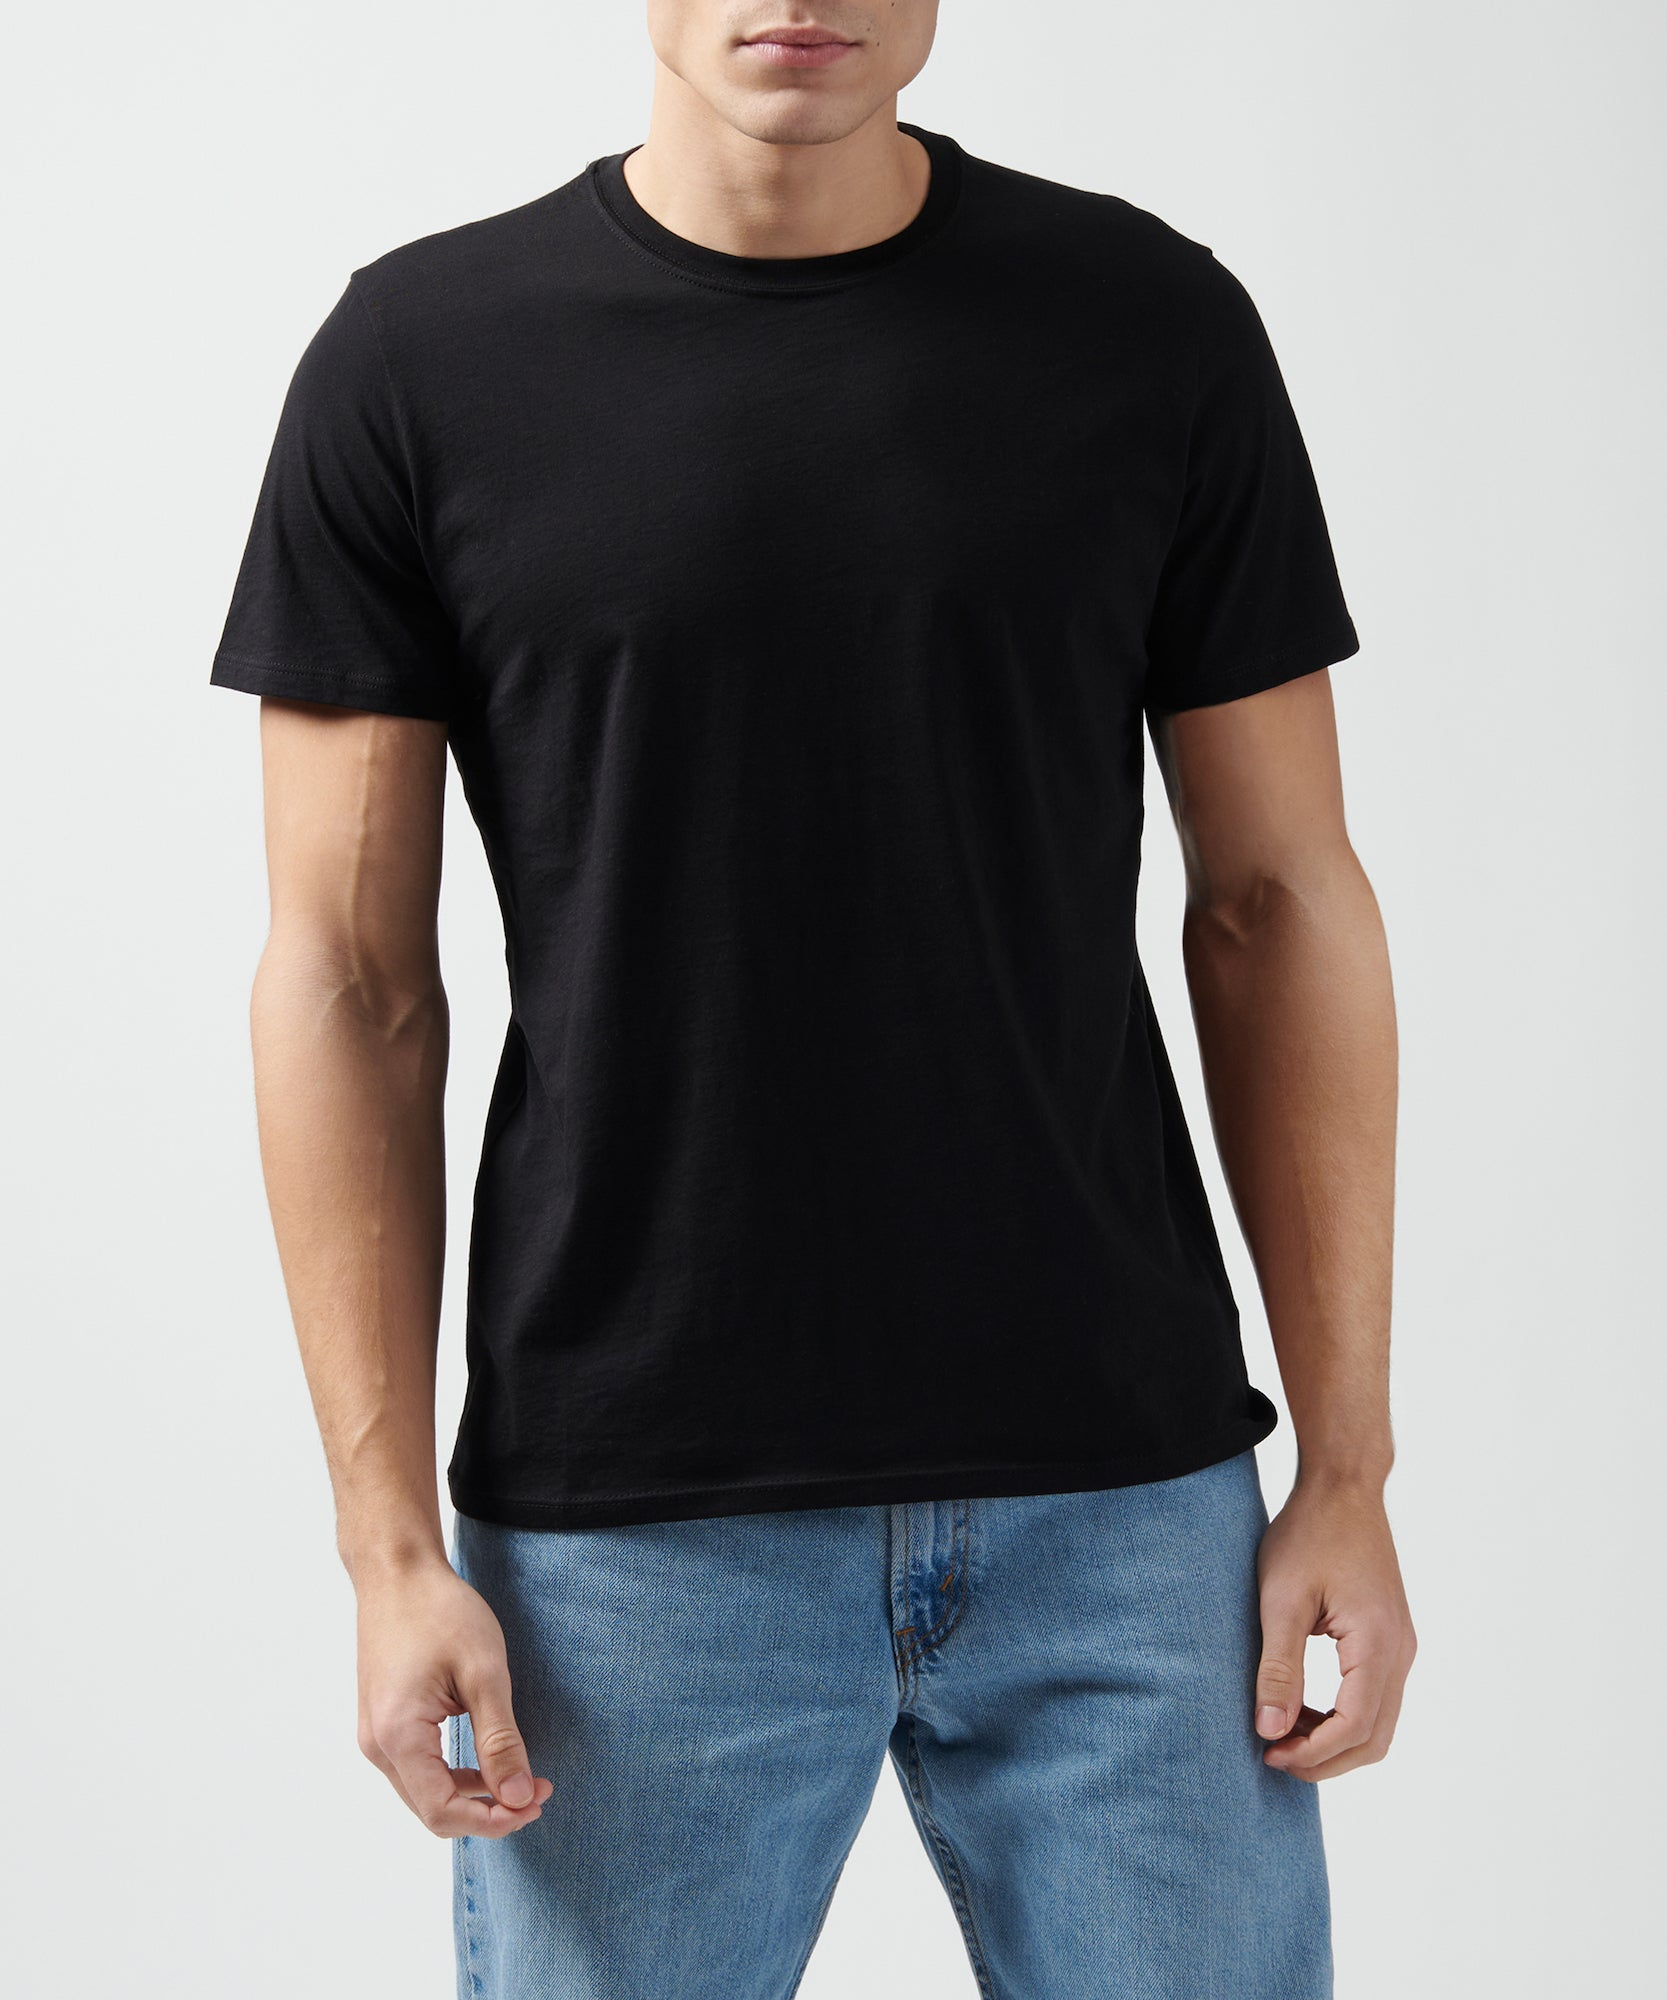 Black Classic Jersey Crew Neck Tee - Men's Cotton Short Sleeve T-shirt by ATM Anthony Thomas Melillo